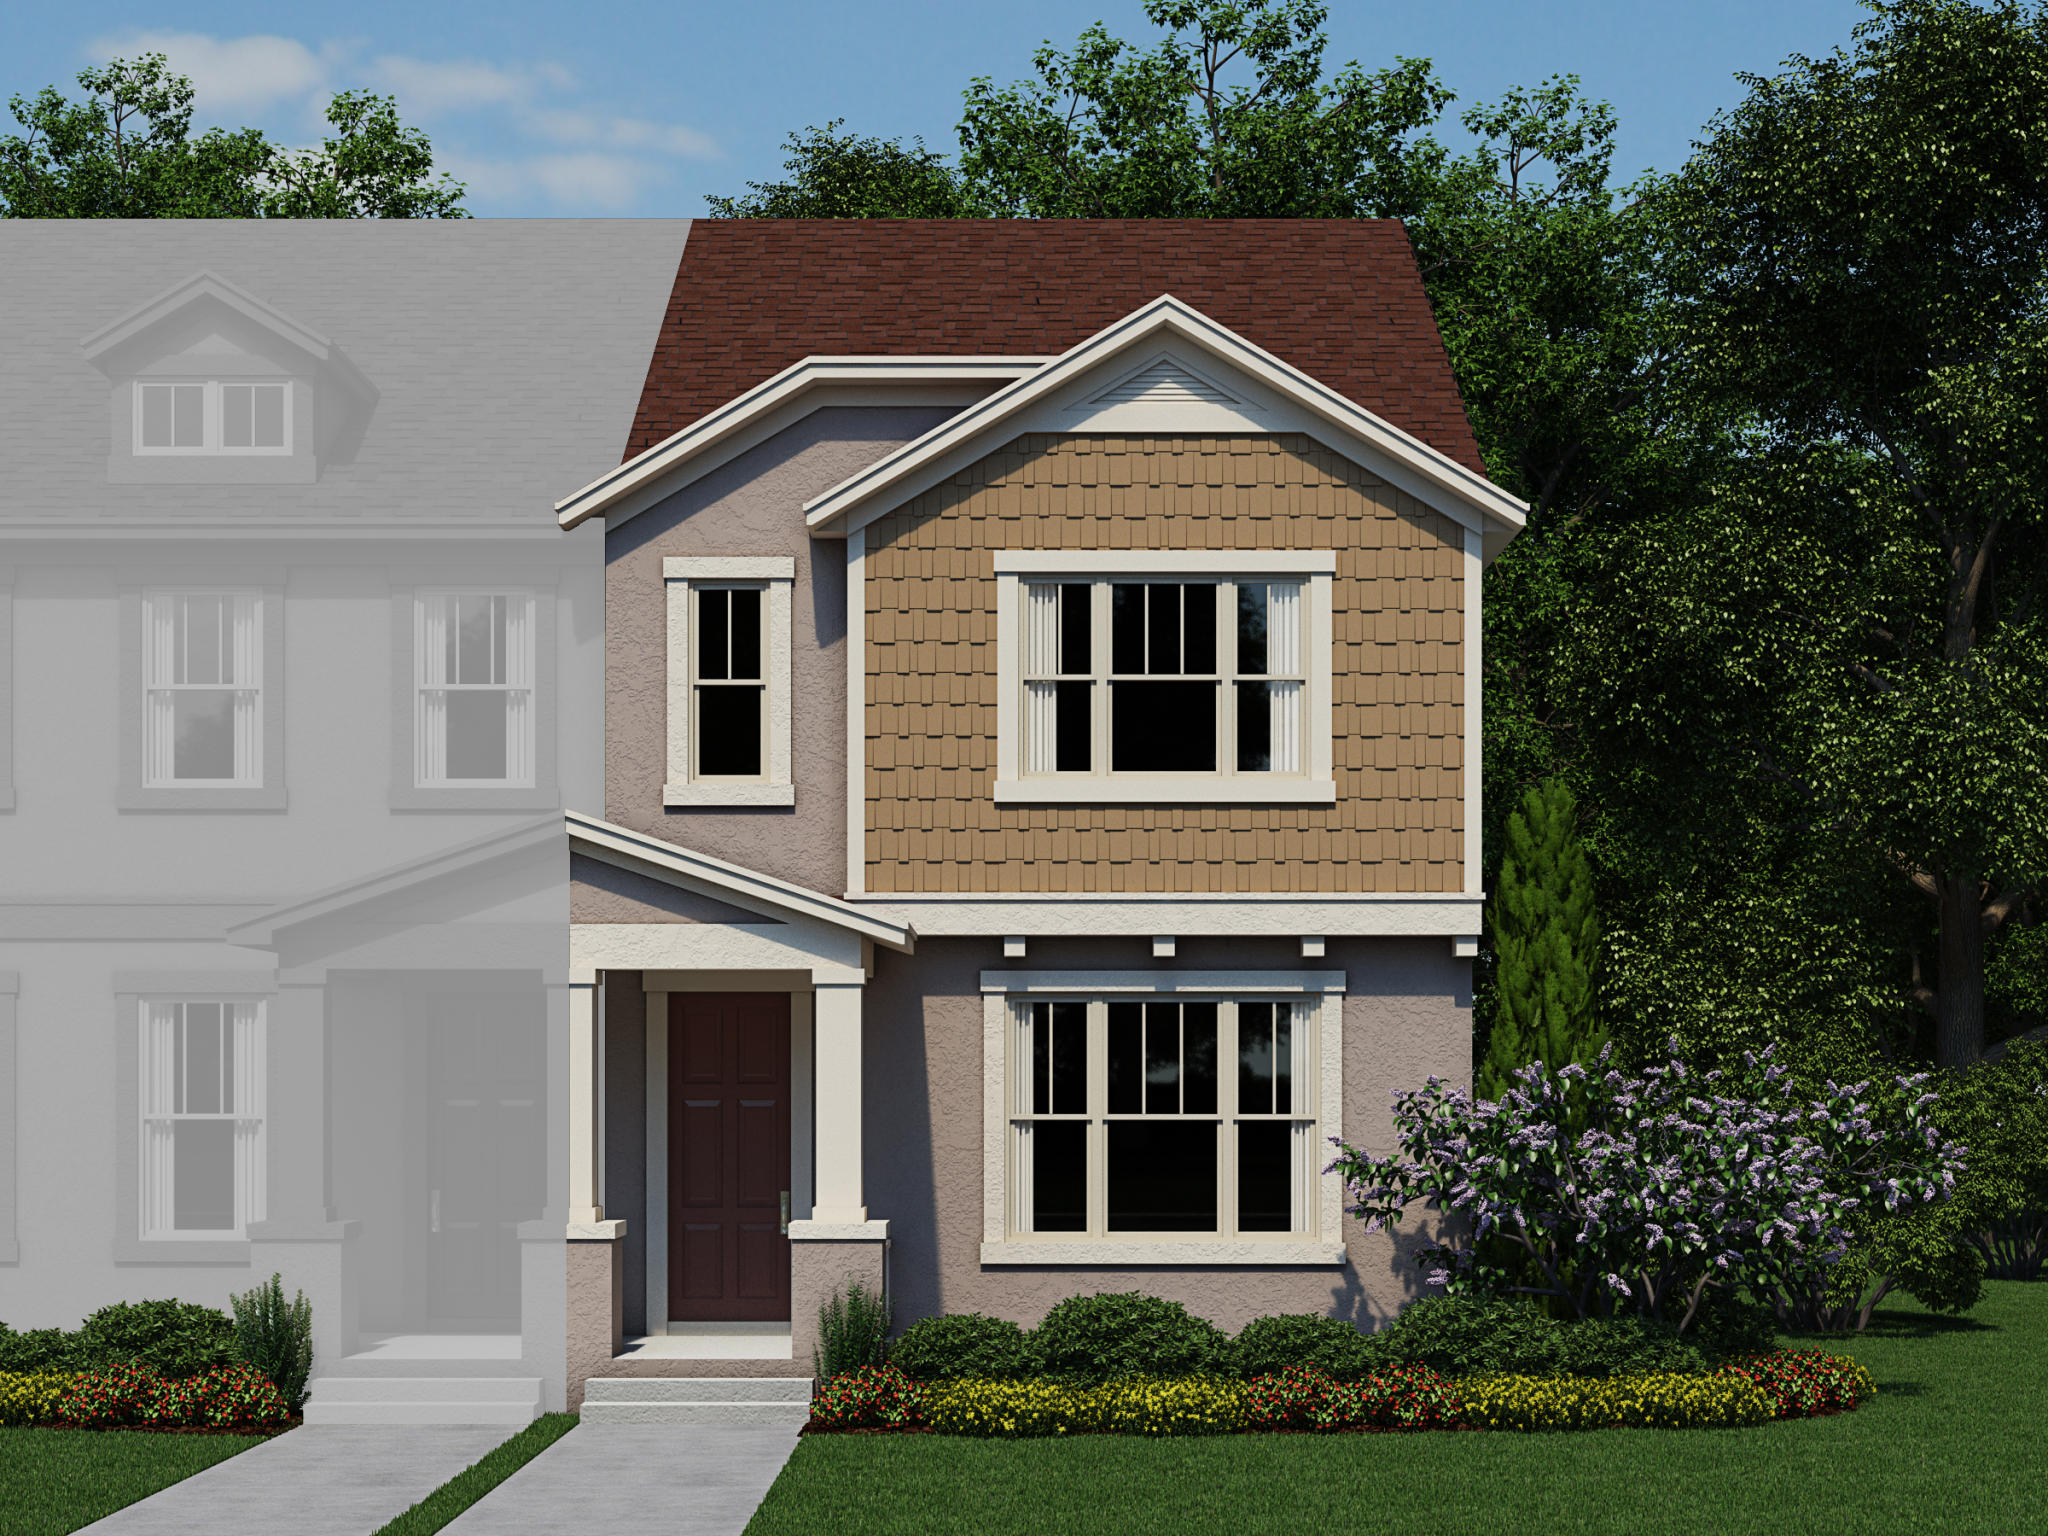 walden plan winter garden fl 34787 estimate and home details